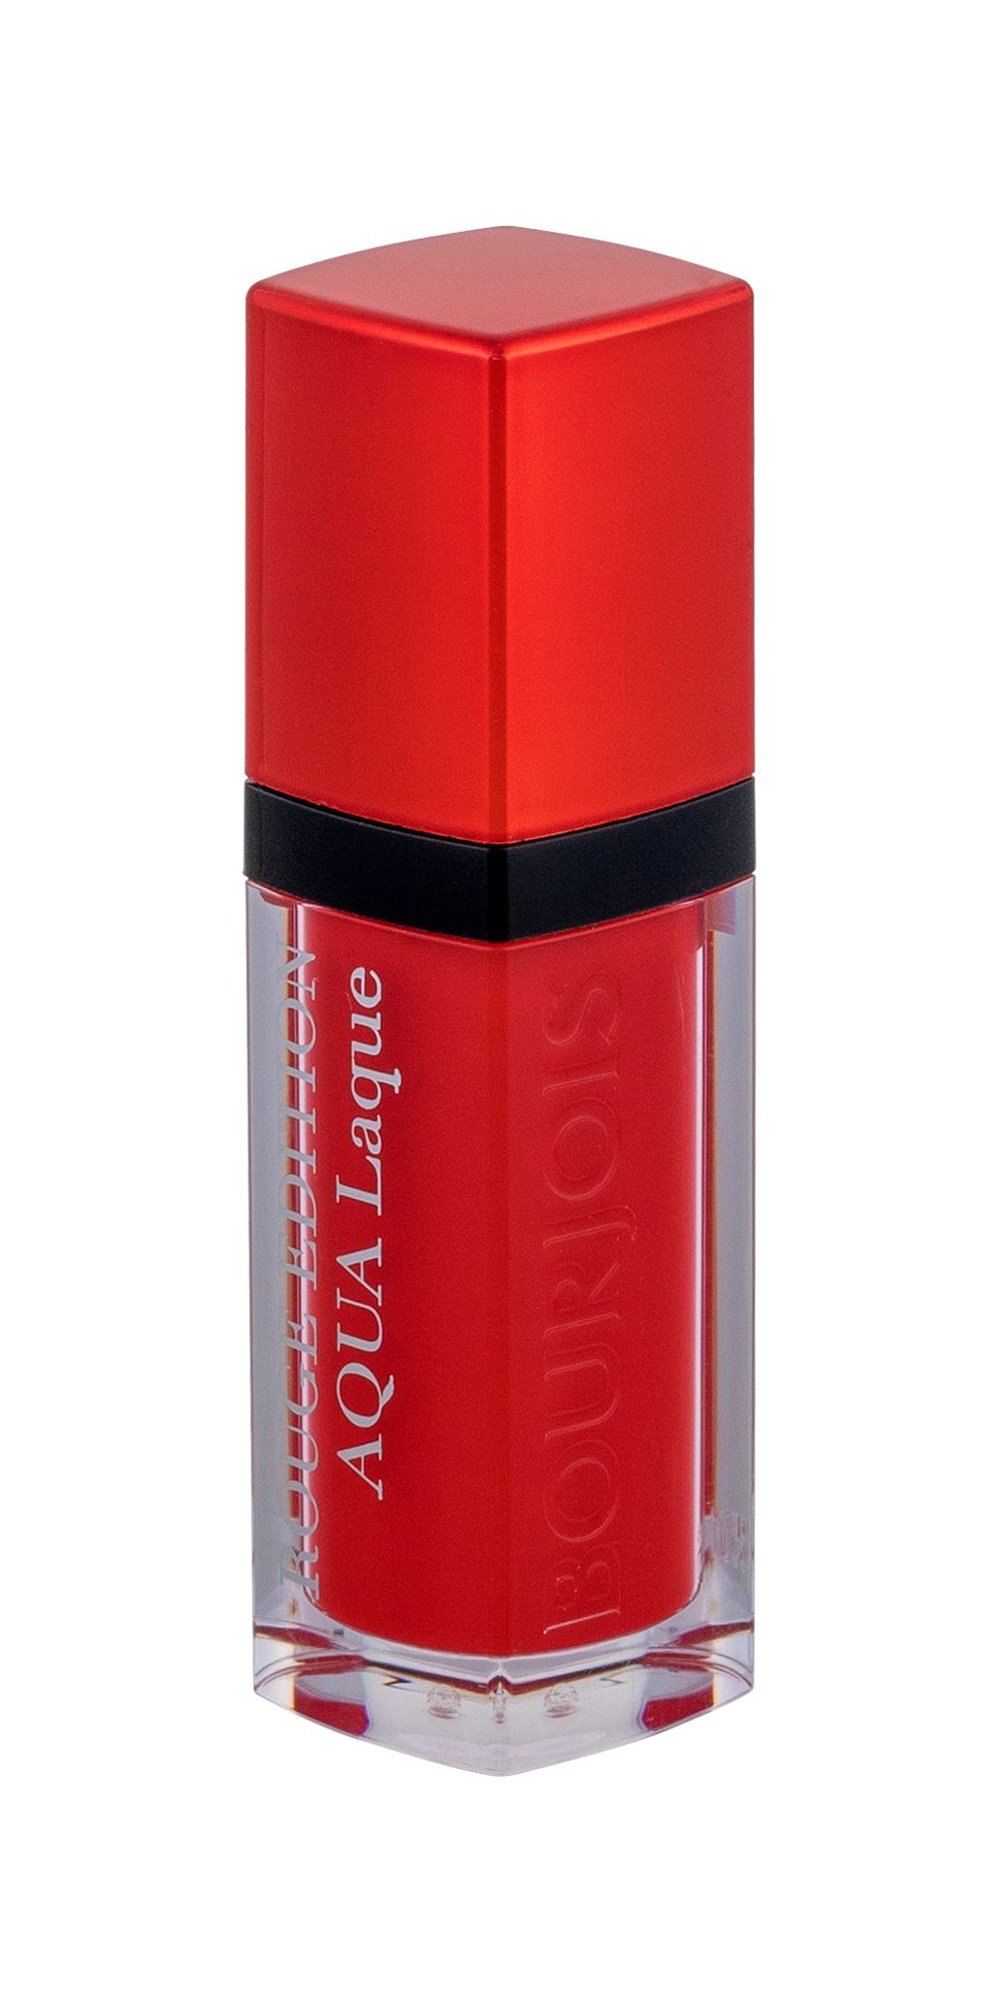 BOURJOIS Paris Rouge Edition Cosmetic 7,7ml 06 Feeling Reddy